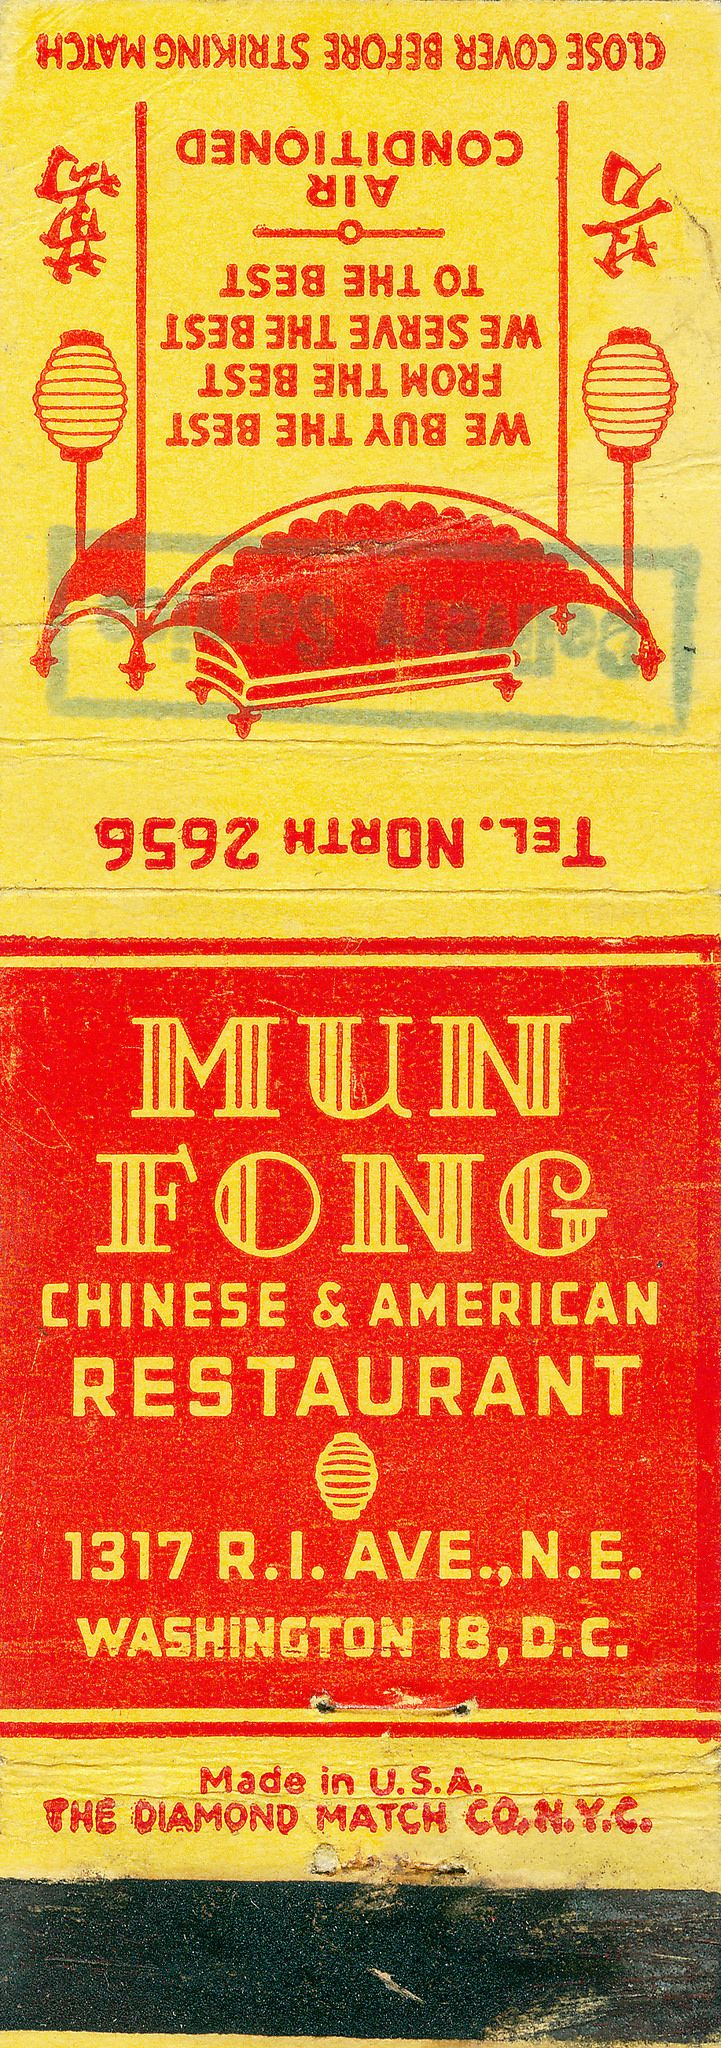 114 best historic washington dc matchbook covers images on